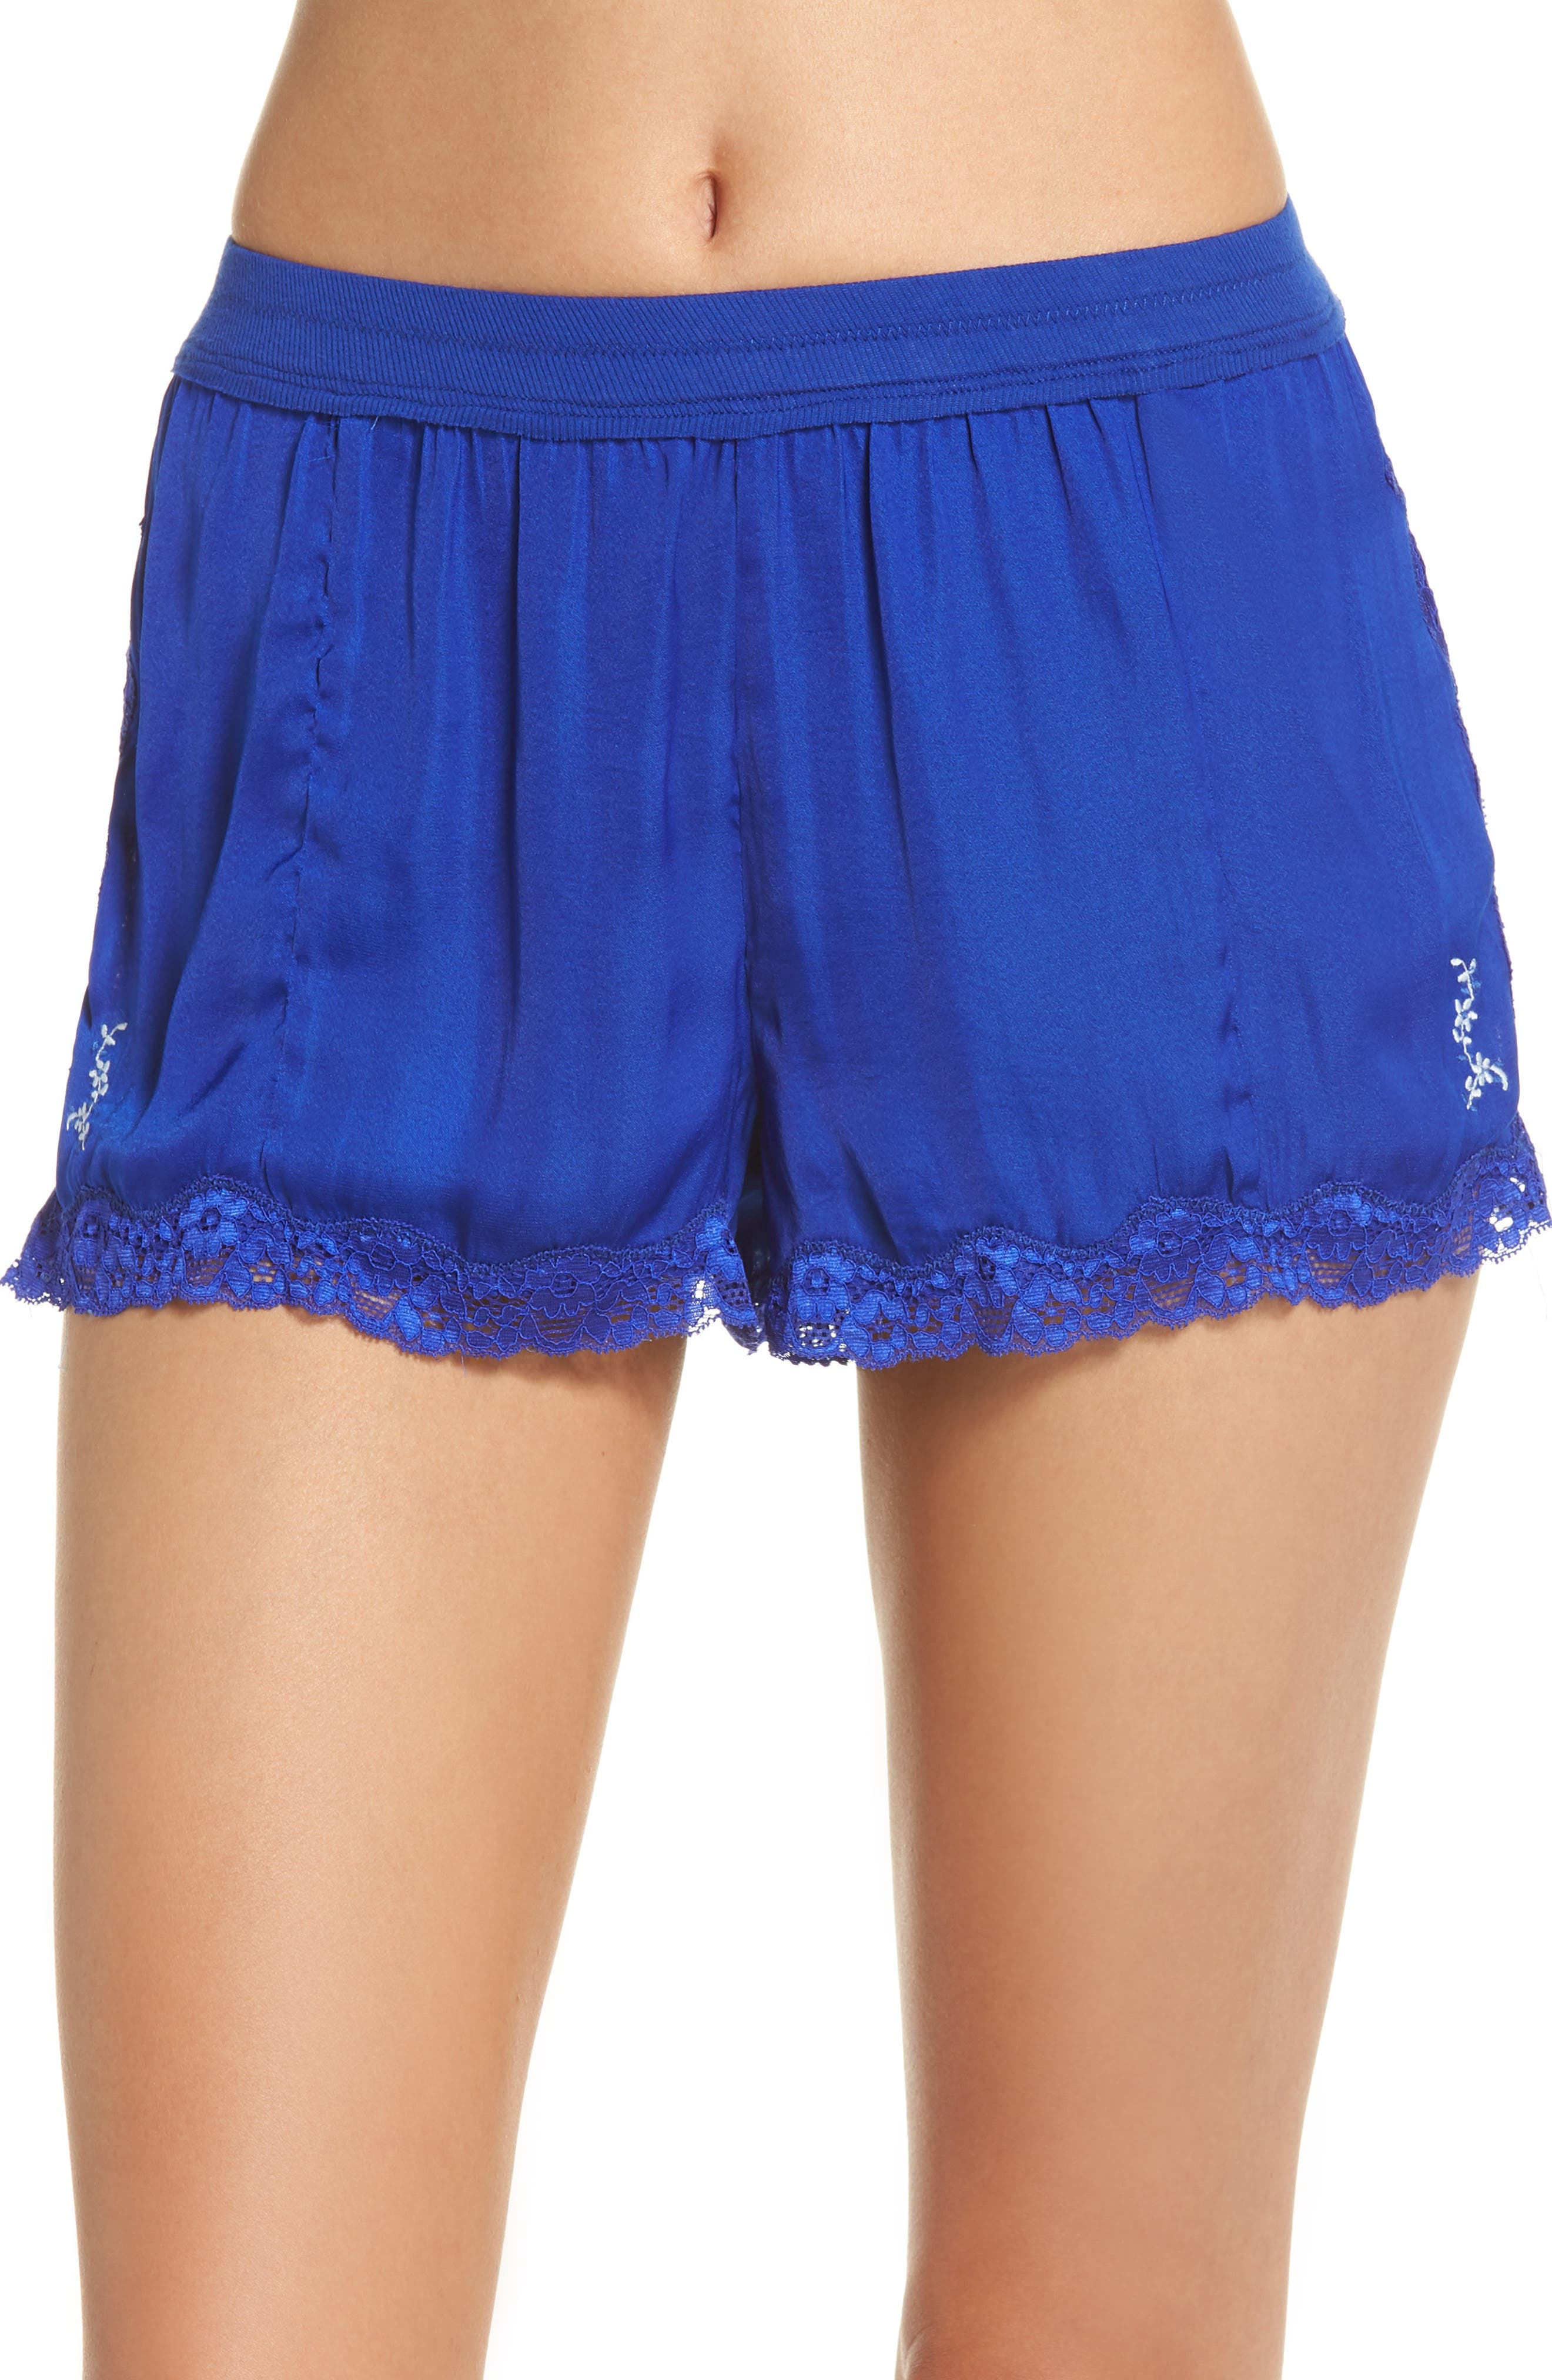 Intimately FP High Side Shorts,                         Main,                         color, 400